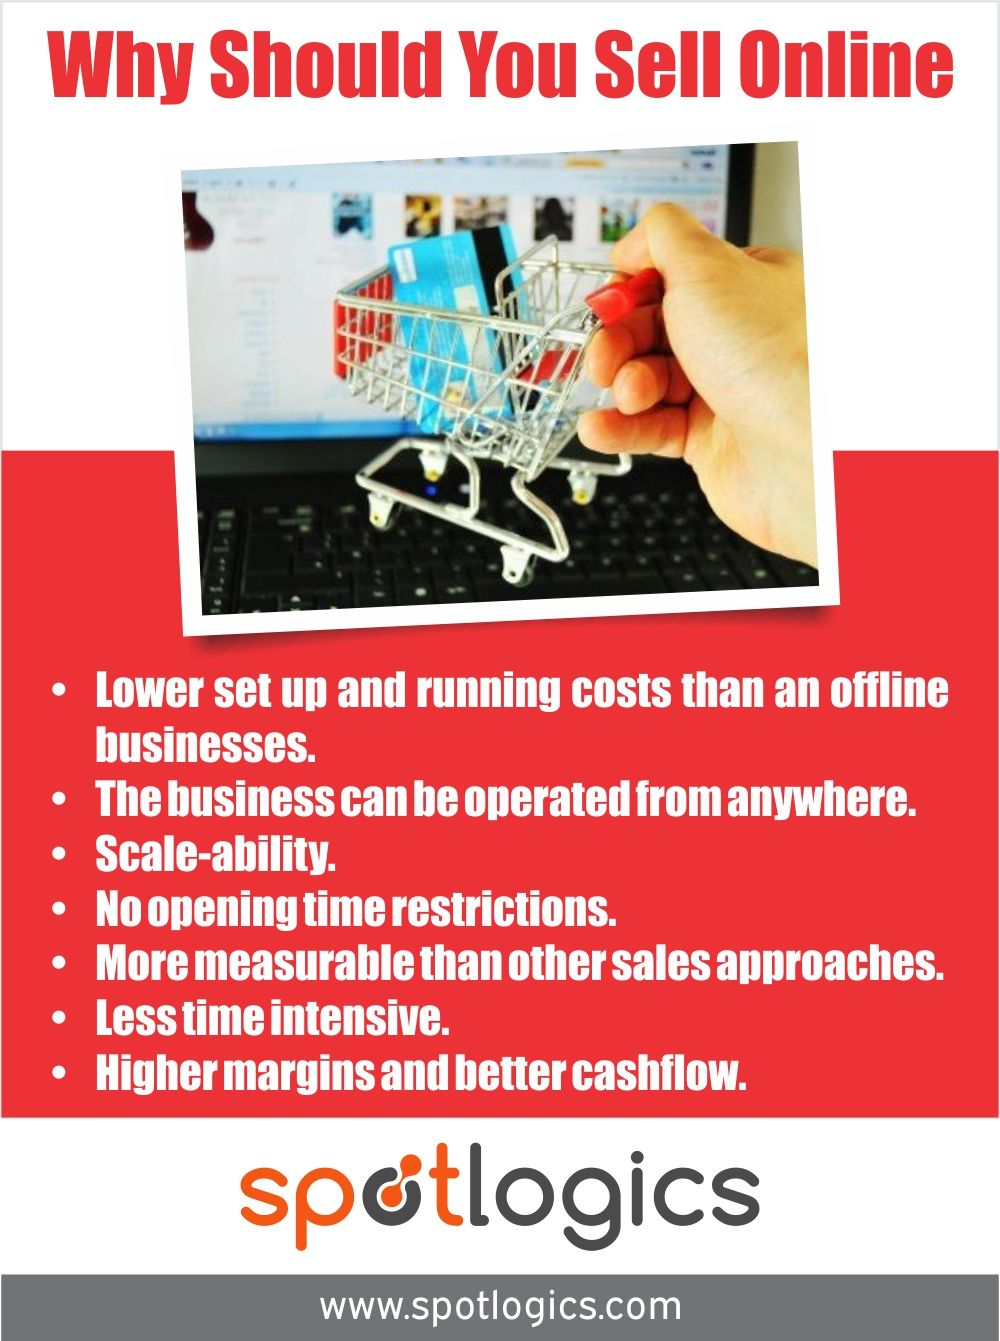 Why Should You Sell Online? Contact Spotlogics for E